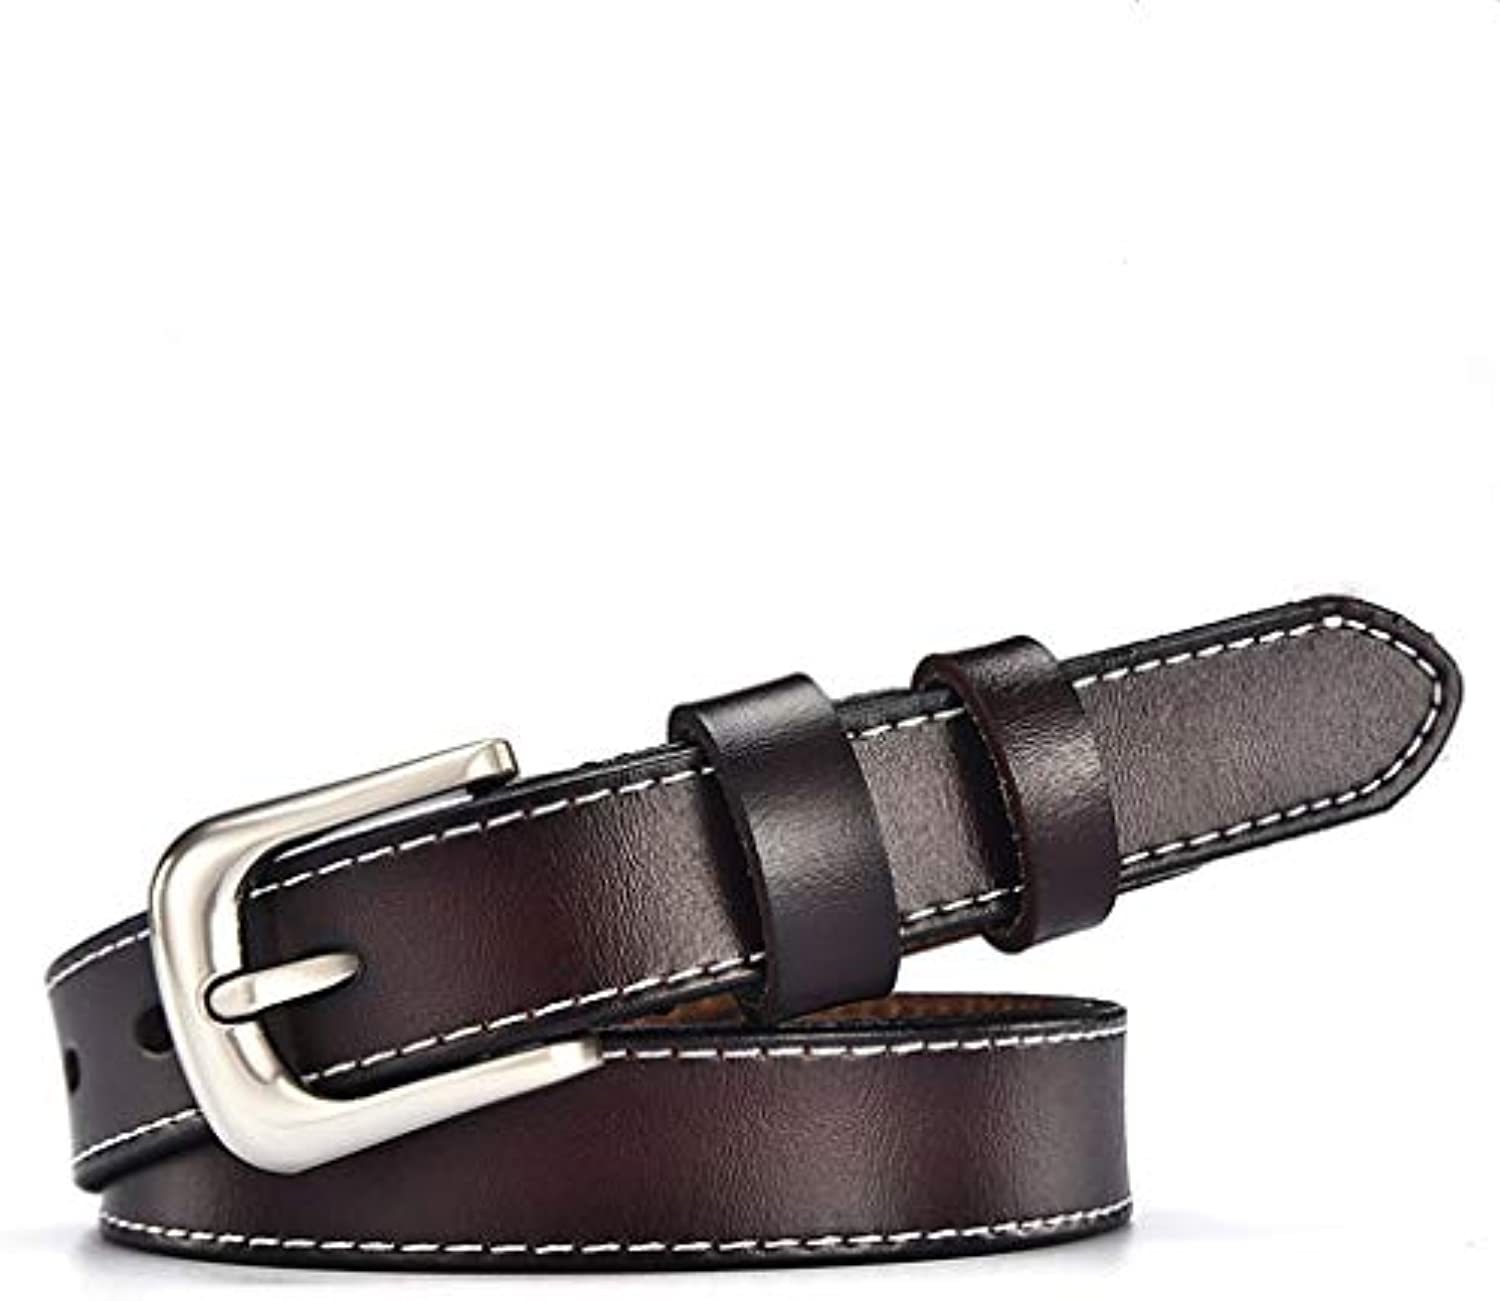 GAOQINGFENG Italian Cowhide Leather Belt with Simple Pure Belt ... 831ba8968a69